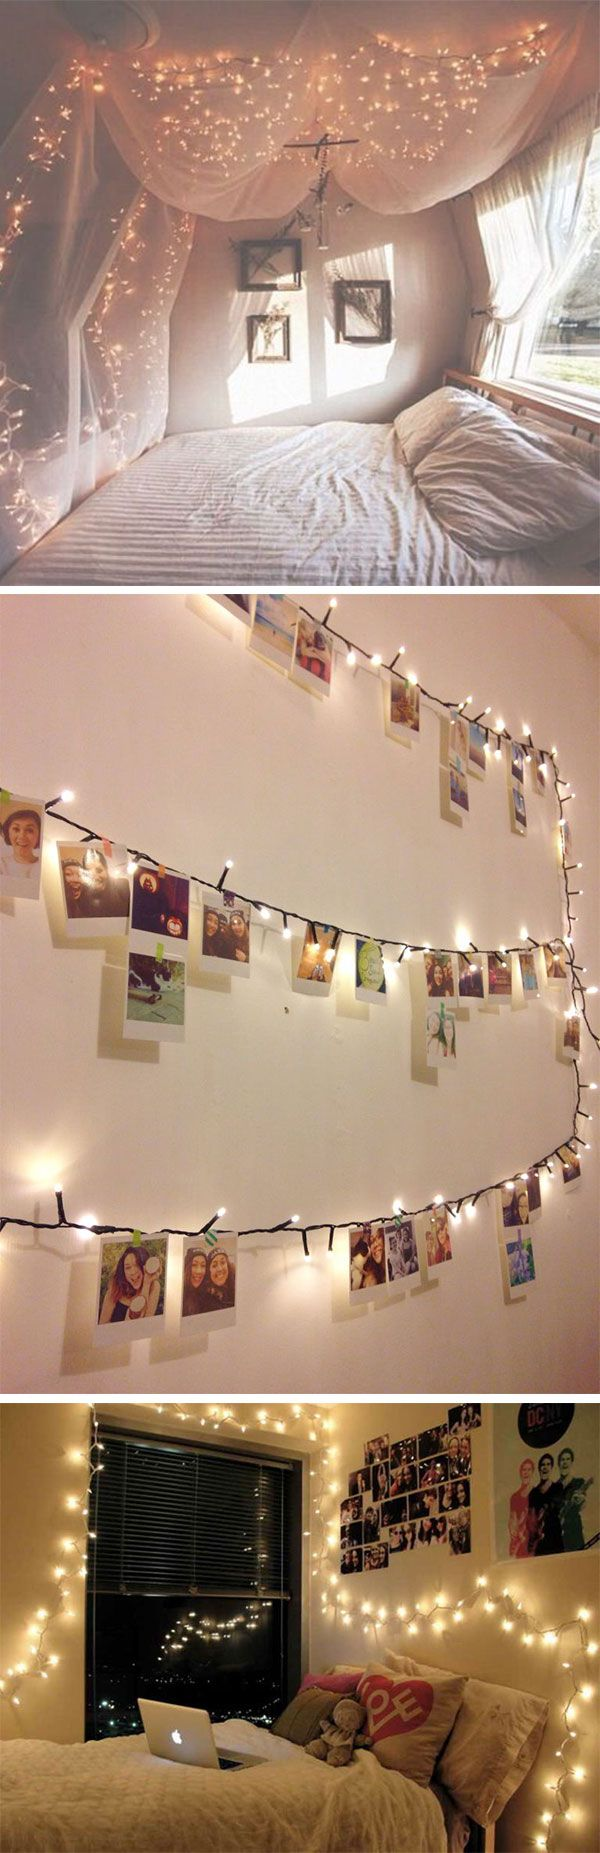 Loft bed lighting ideas   ways to use fairy lights to make your bedroom look magical  Loft